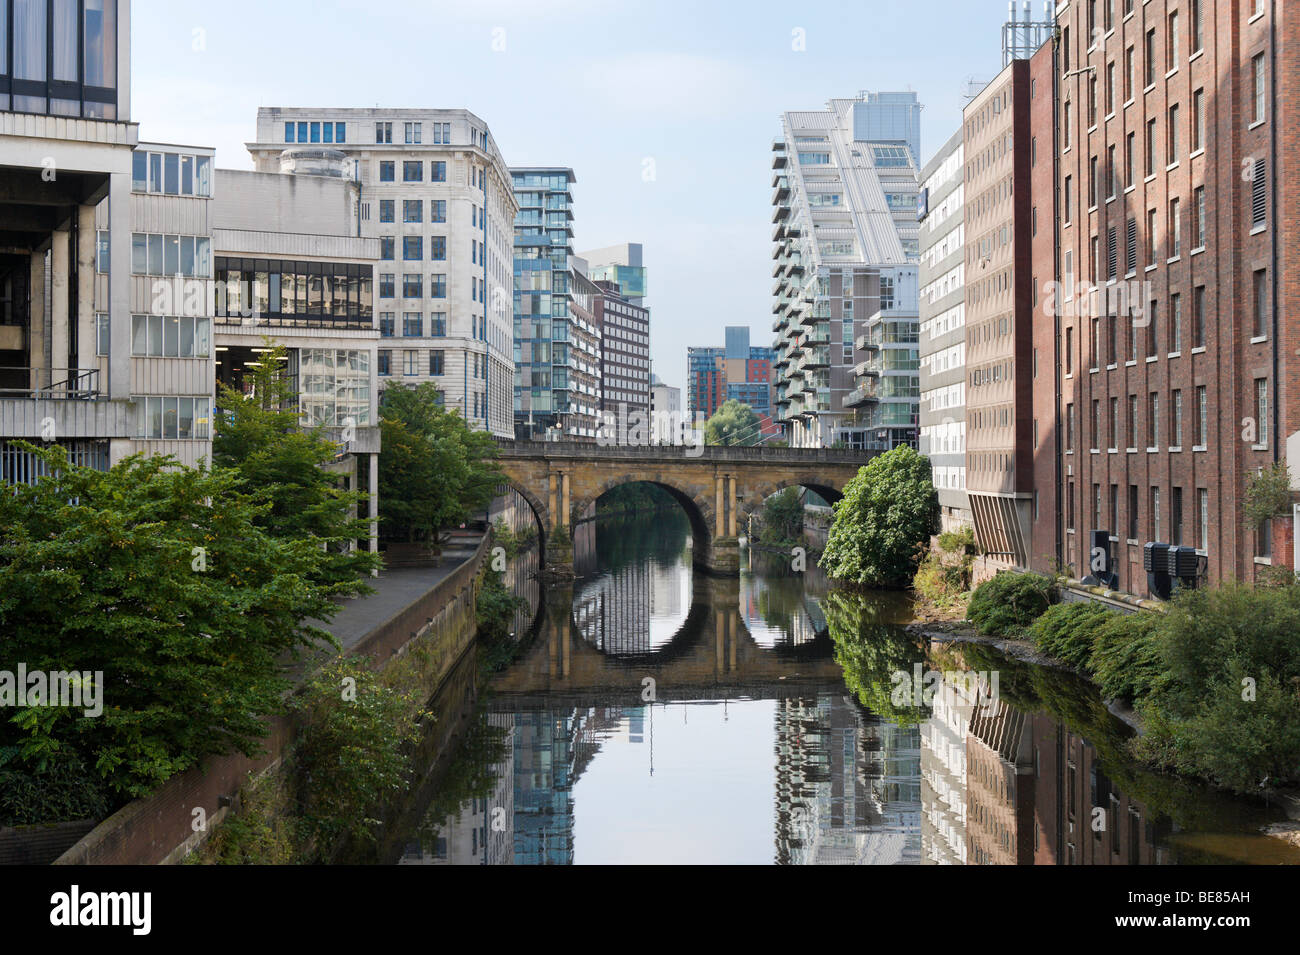 River Irwell from Victoria Bridge in the city centre, Manchester, England, UK - Stock Image